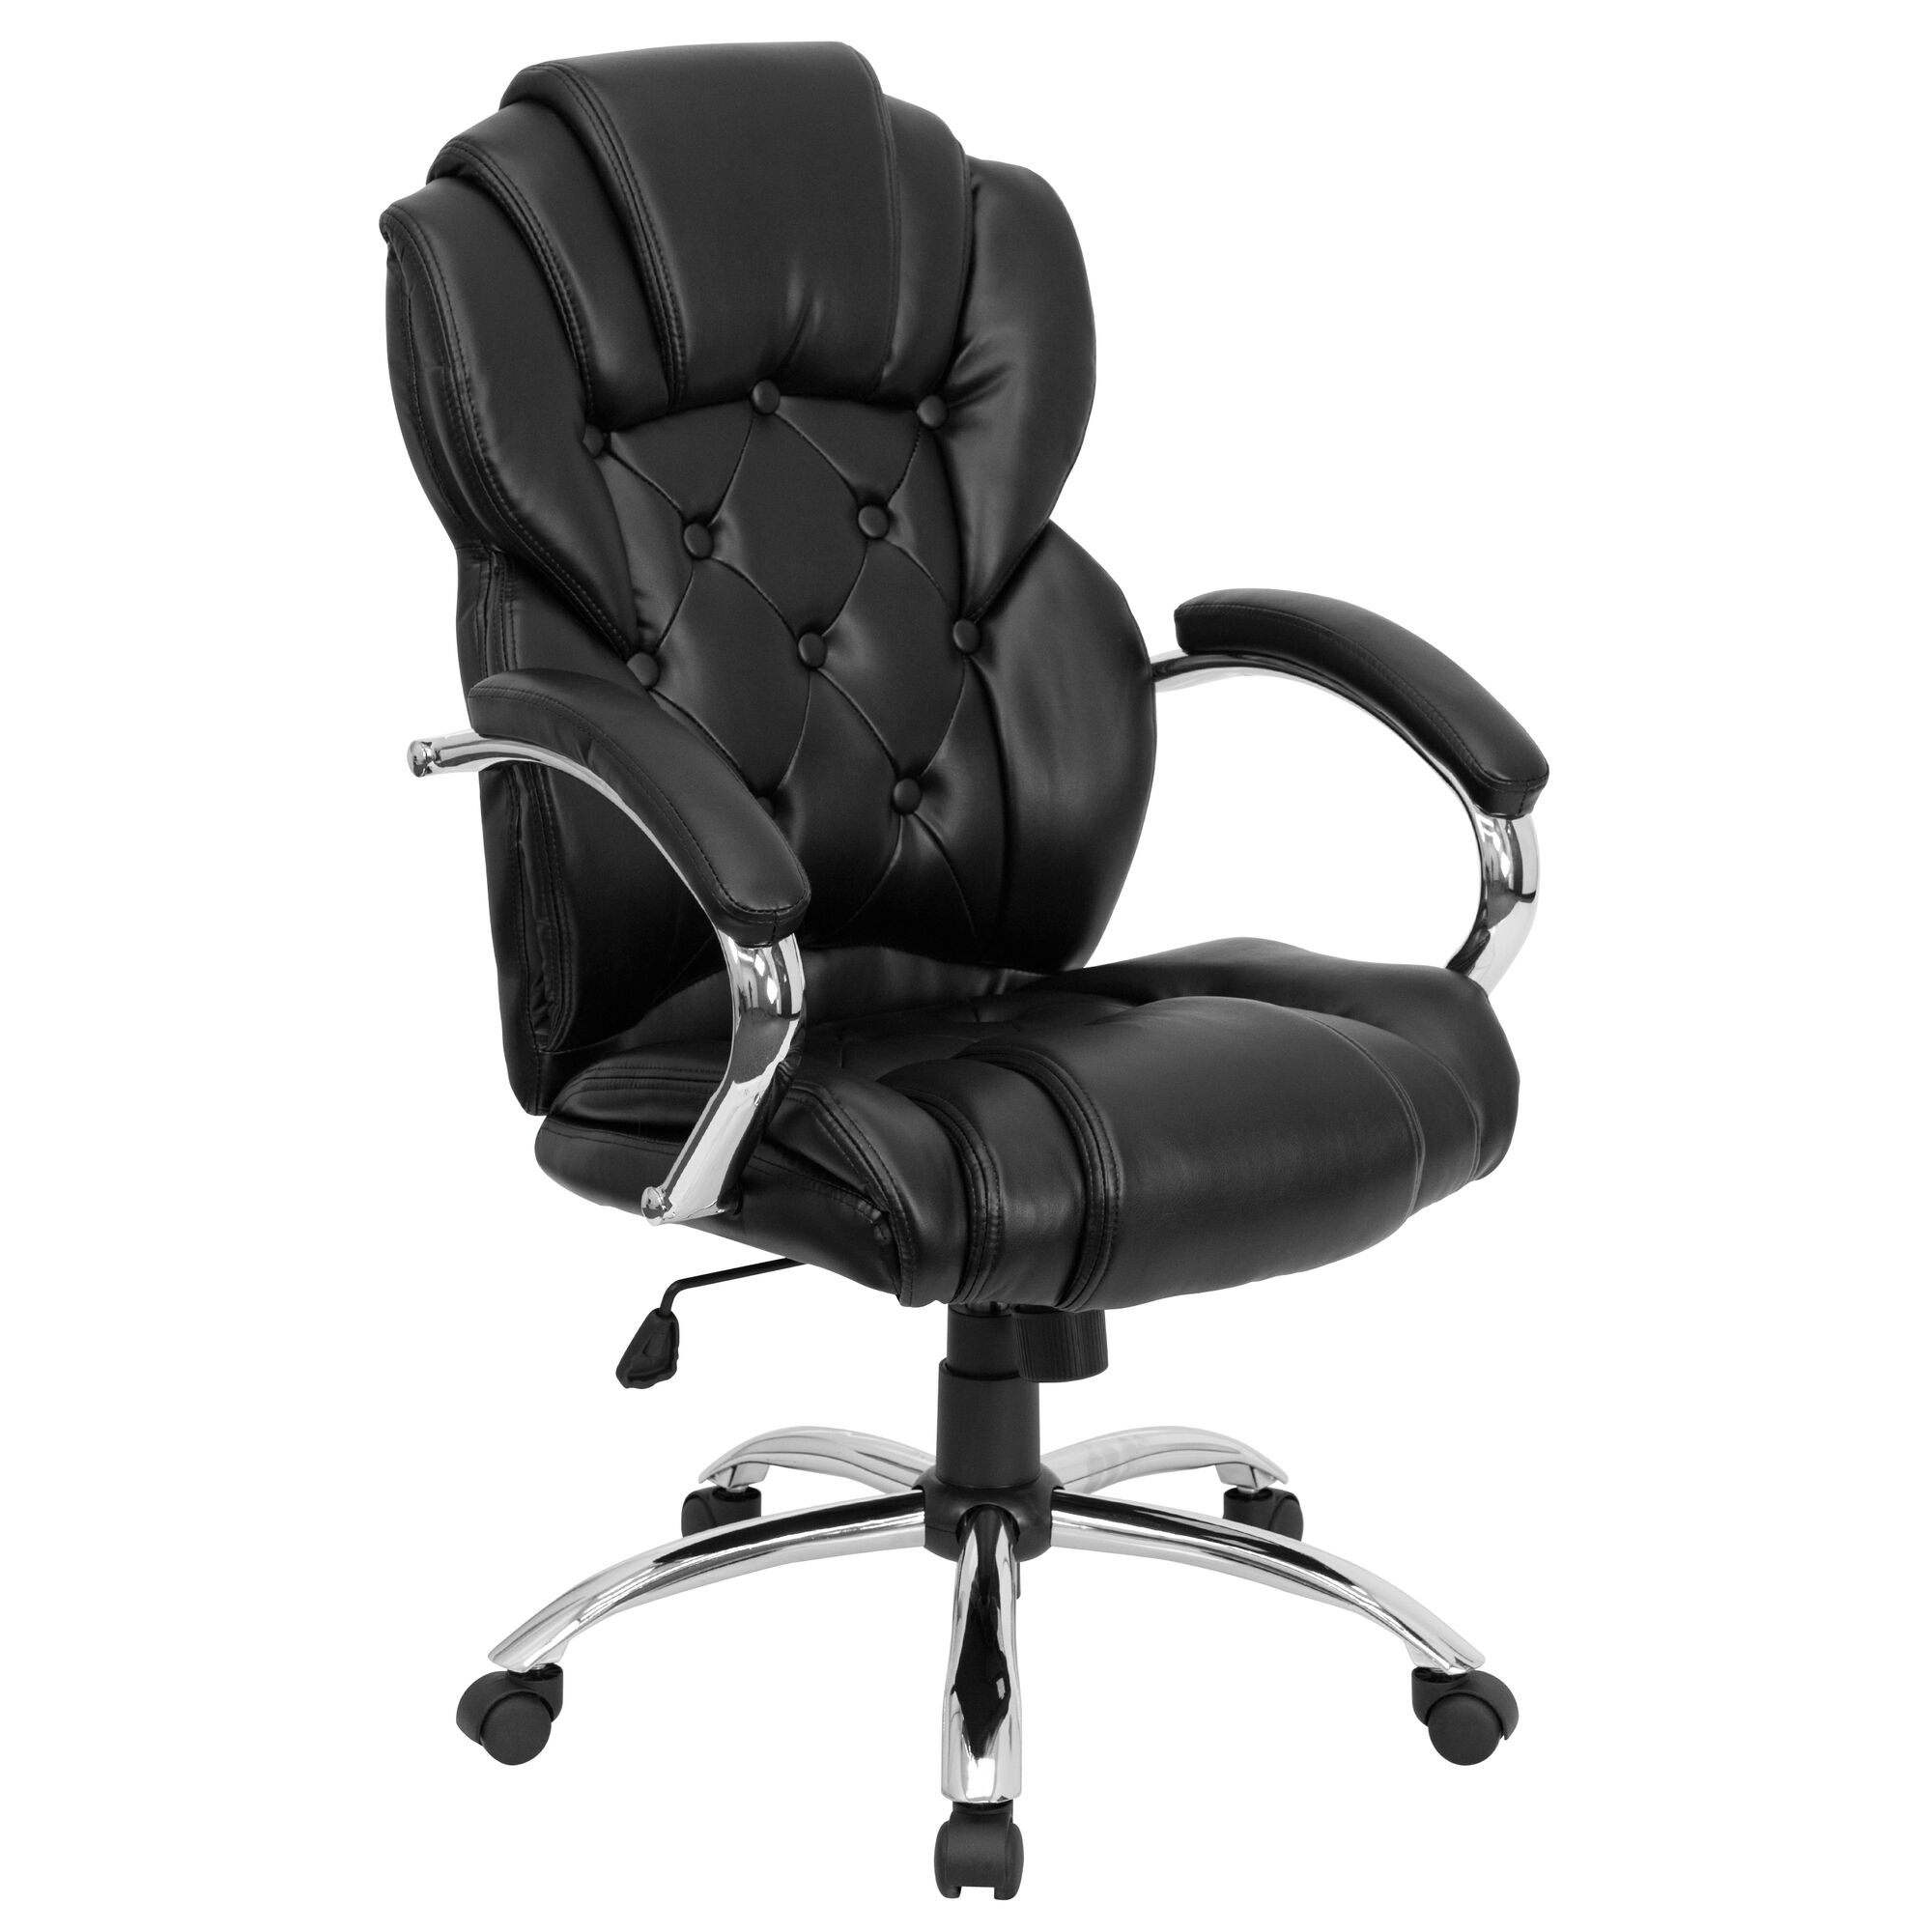 Astounding High Back Transitional Style Black Leather Executive Swivel Office Chair With Arms Gmtry Best Dining Table And Chair Ideas Images Gmtryco